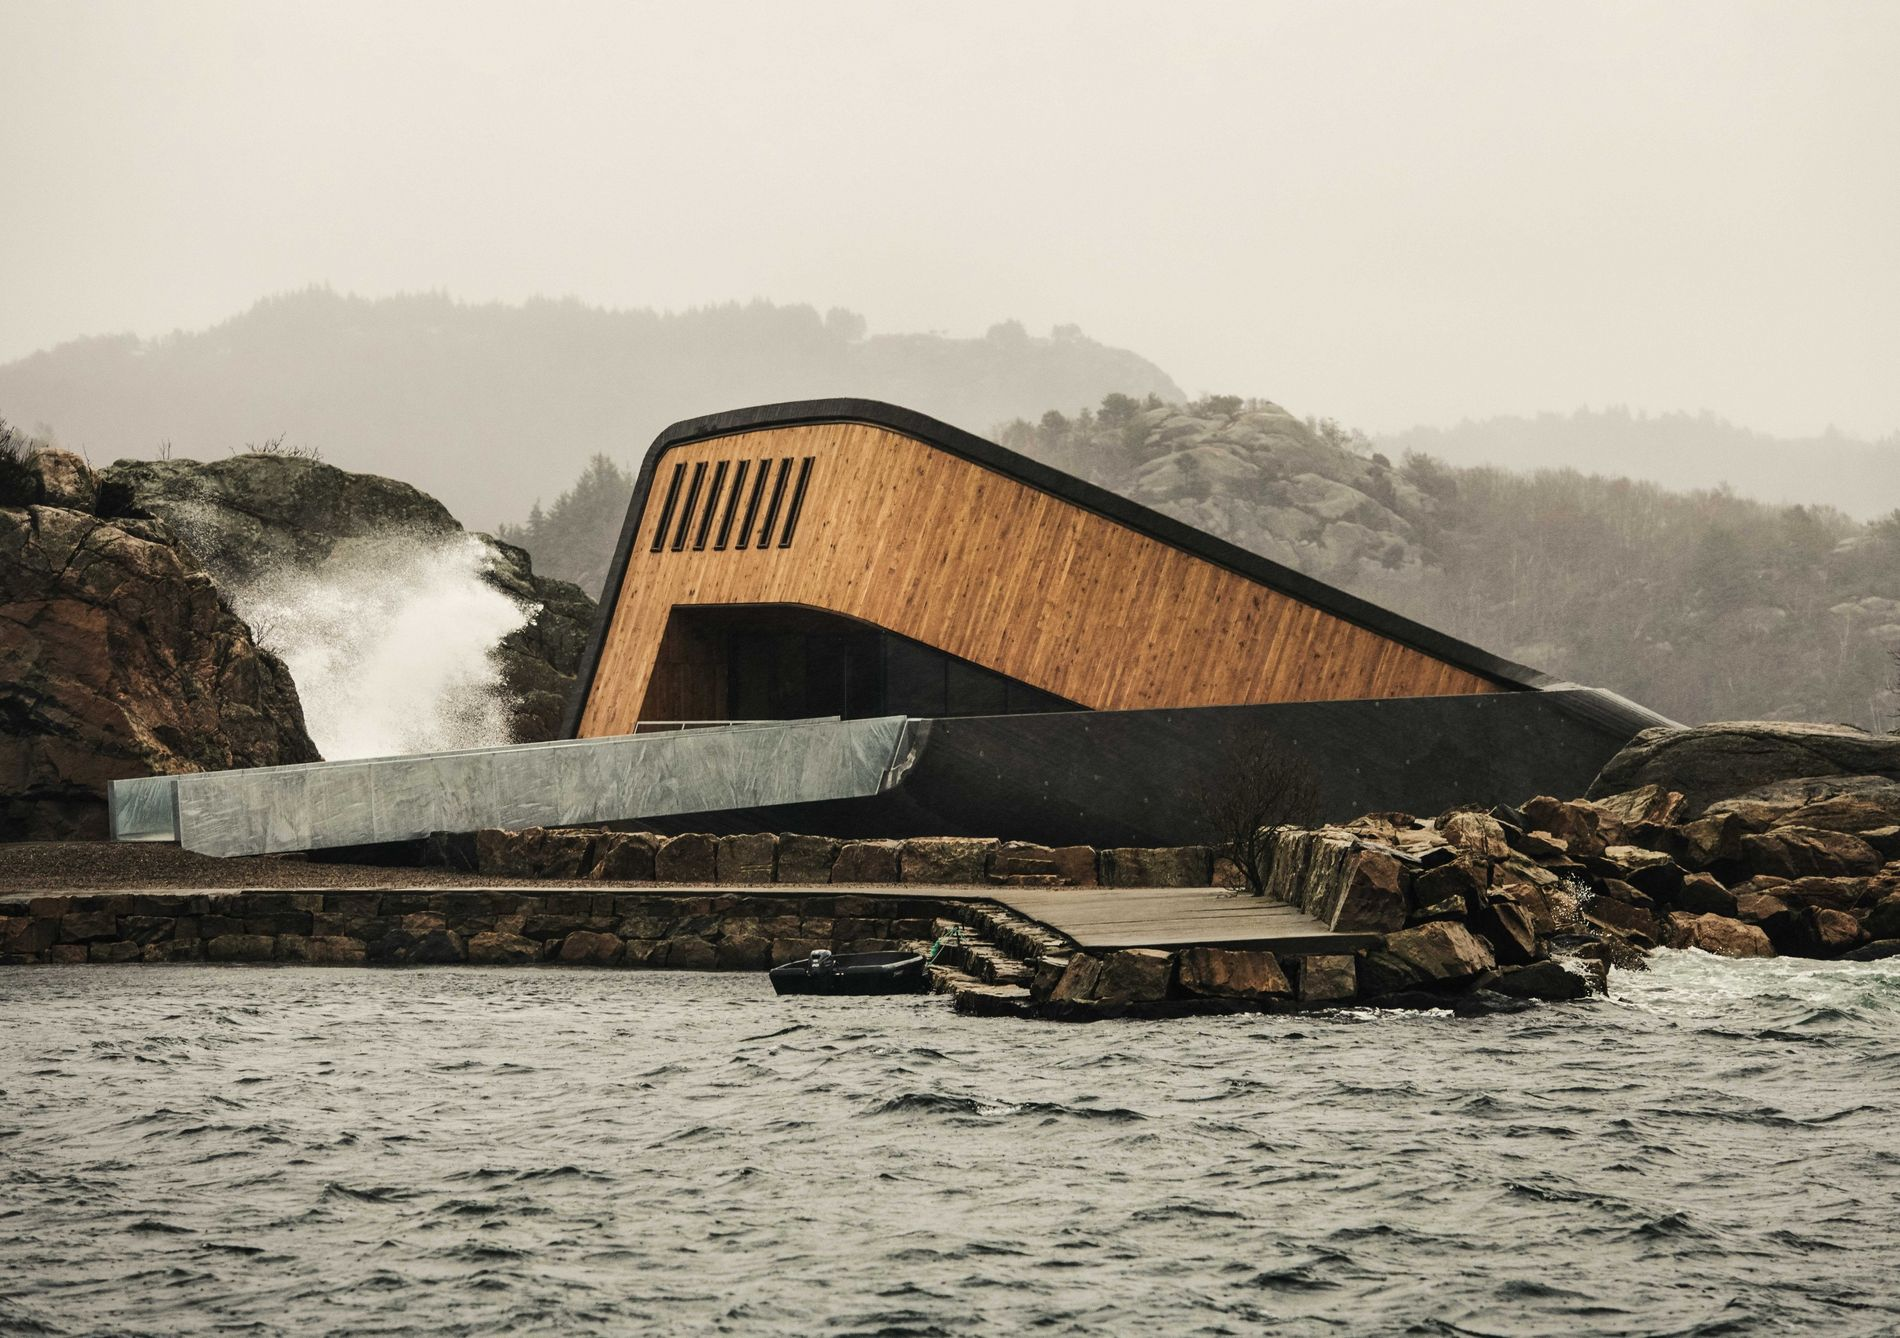 The restaurant Under in Norway is as much about the food as the dramatic setting.